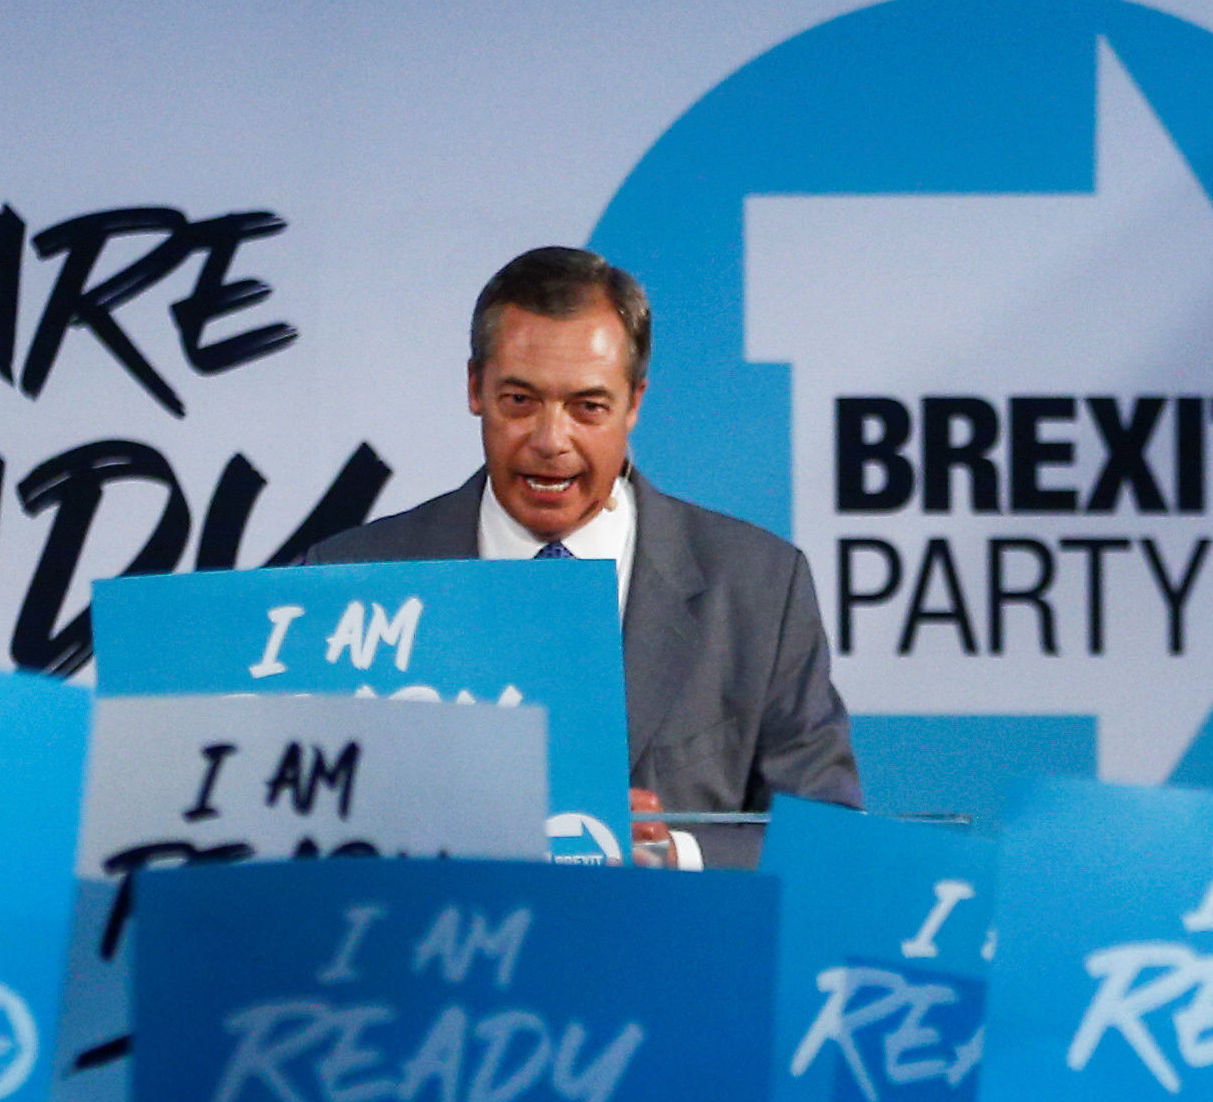 Brexit Party leader Nigel Farage speaks during a Brexit Party news conference in London, Britain August 27, 2019